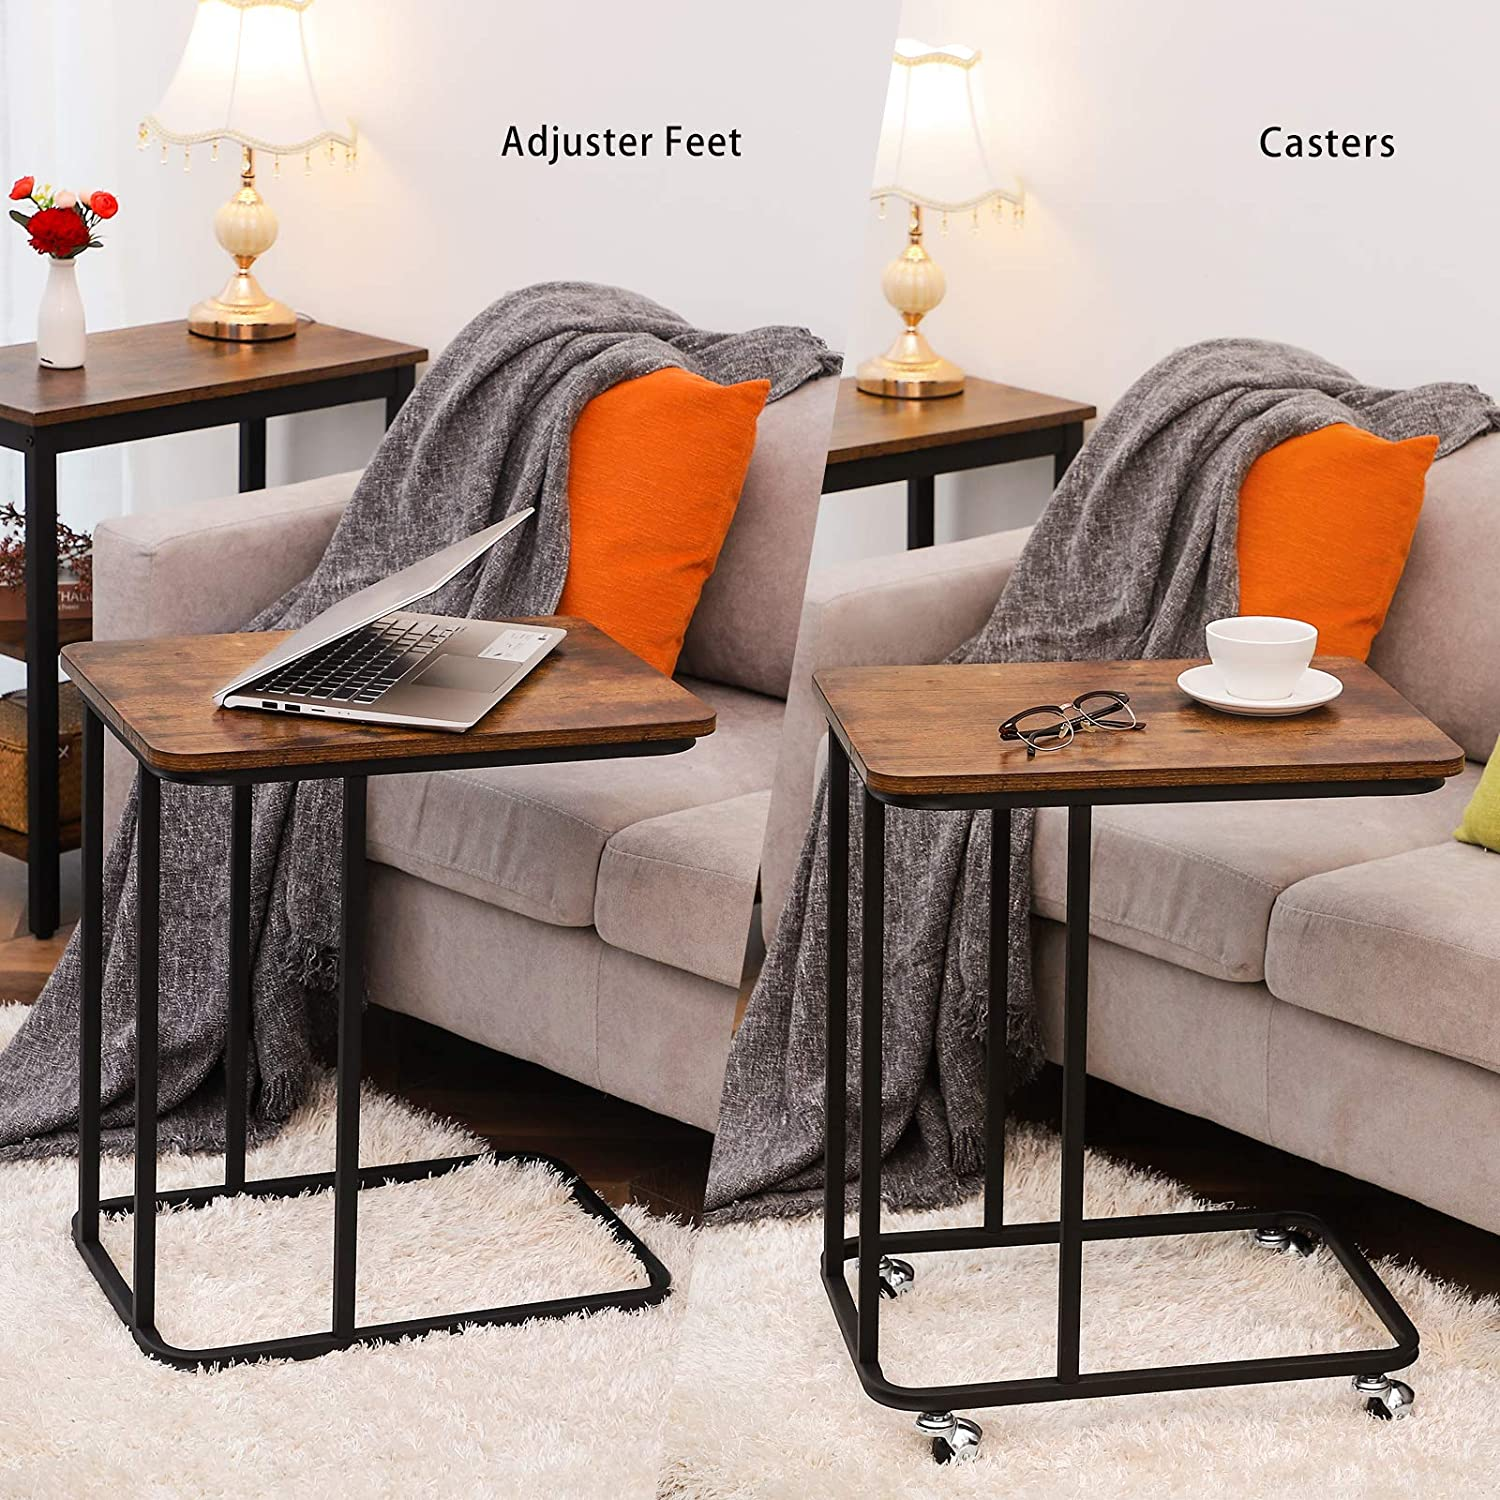 Industrial Mobile Snack Table for Coffee Laptop Tablet Slides Next to Sofa Couch Bedroom Easy Assembly for Living Room HOOBRO Side Table Wood Look Accent Furniture EBF01SF01 Space Saving